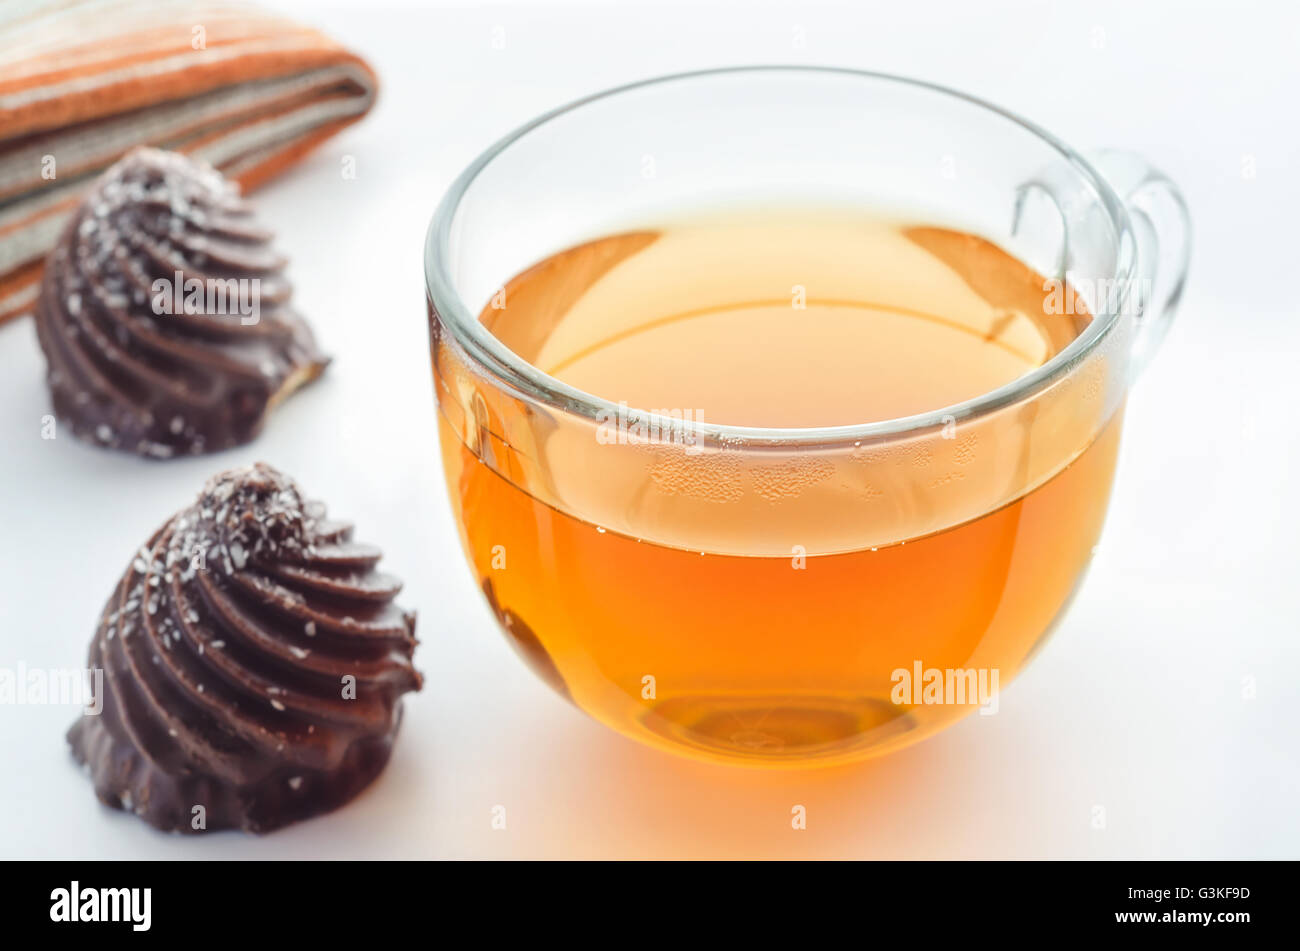 Cup of tea and chocolates - Stock Image